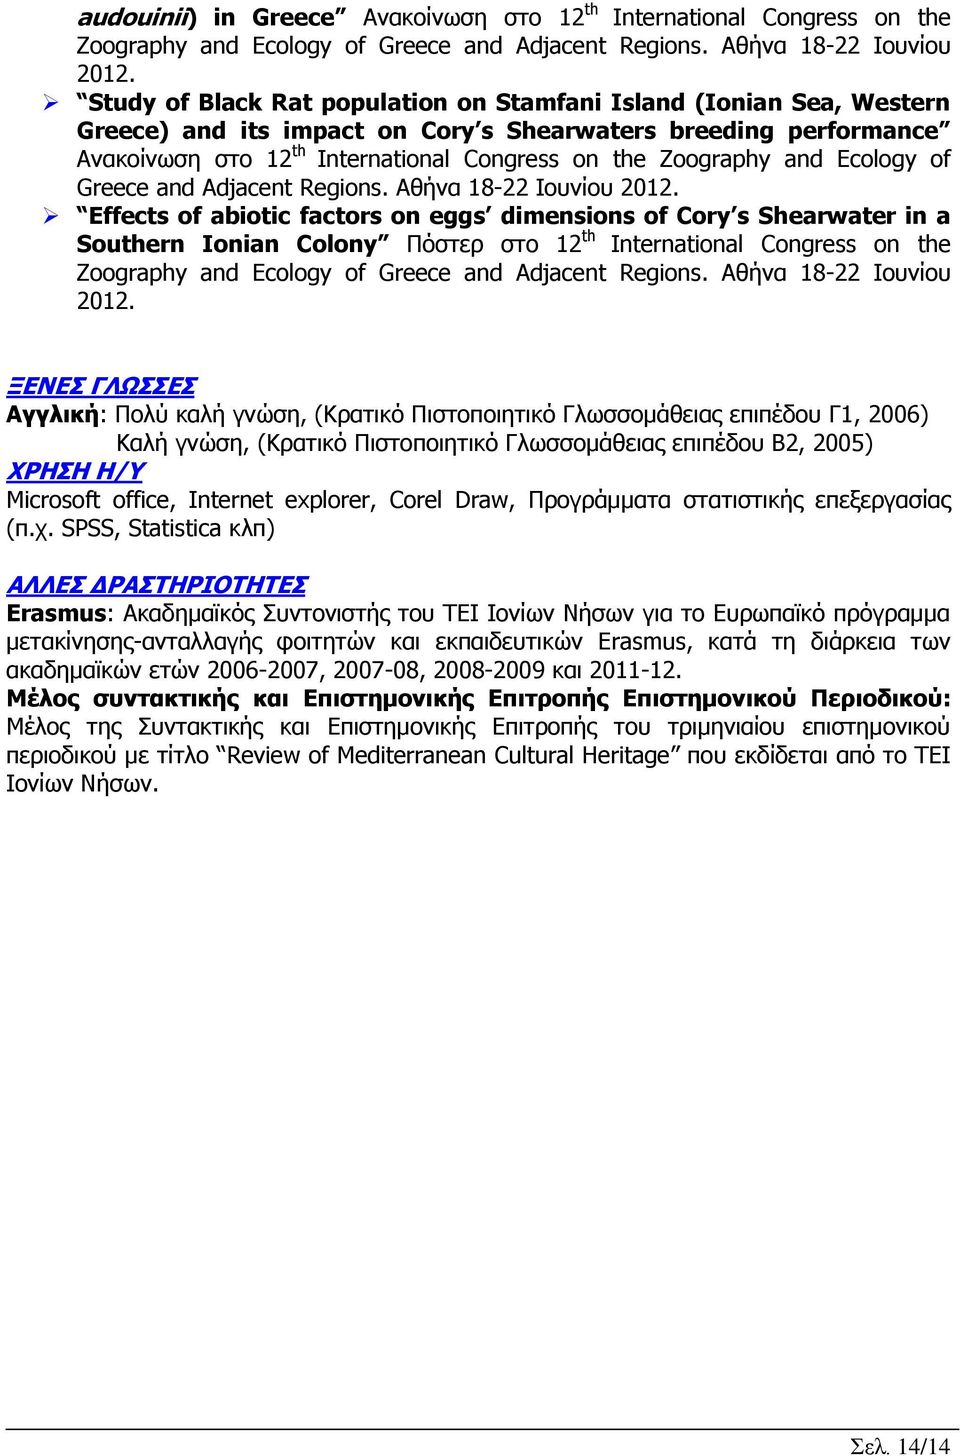 and Ecology of Greece and Adjacent Regions. Aθήνα 18-22 Ιουνίου 2012.